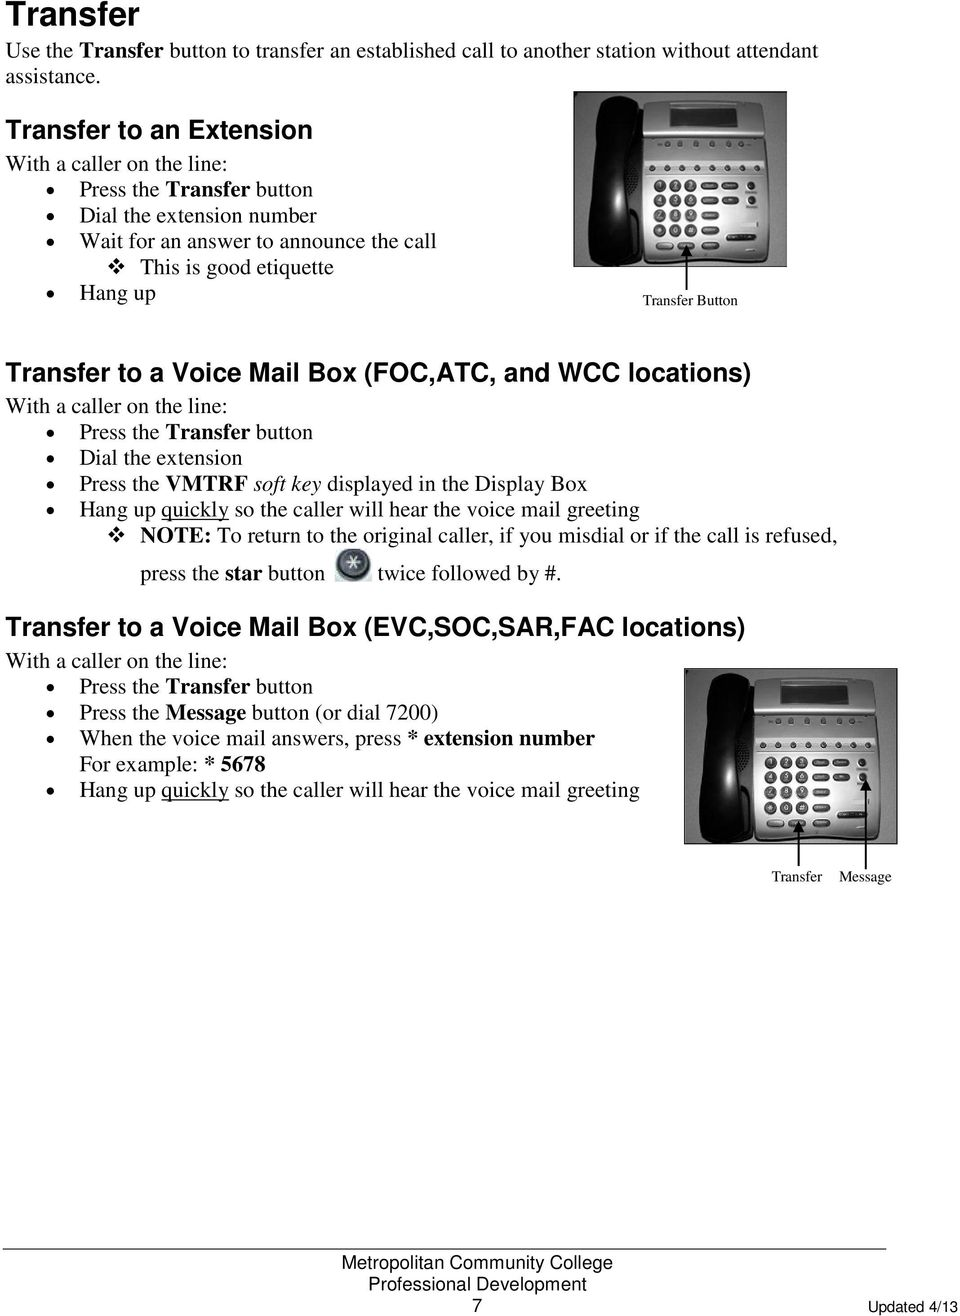 to a Voice Mail Box (FOC,ATC, and WCC locations) With a caller on the line: Press the Transfer button Dial the extension Press the VMTRF soft key displayed in the Display Box Hang up quickly so the